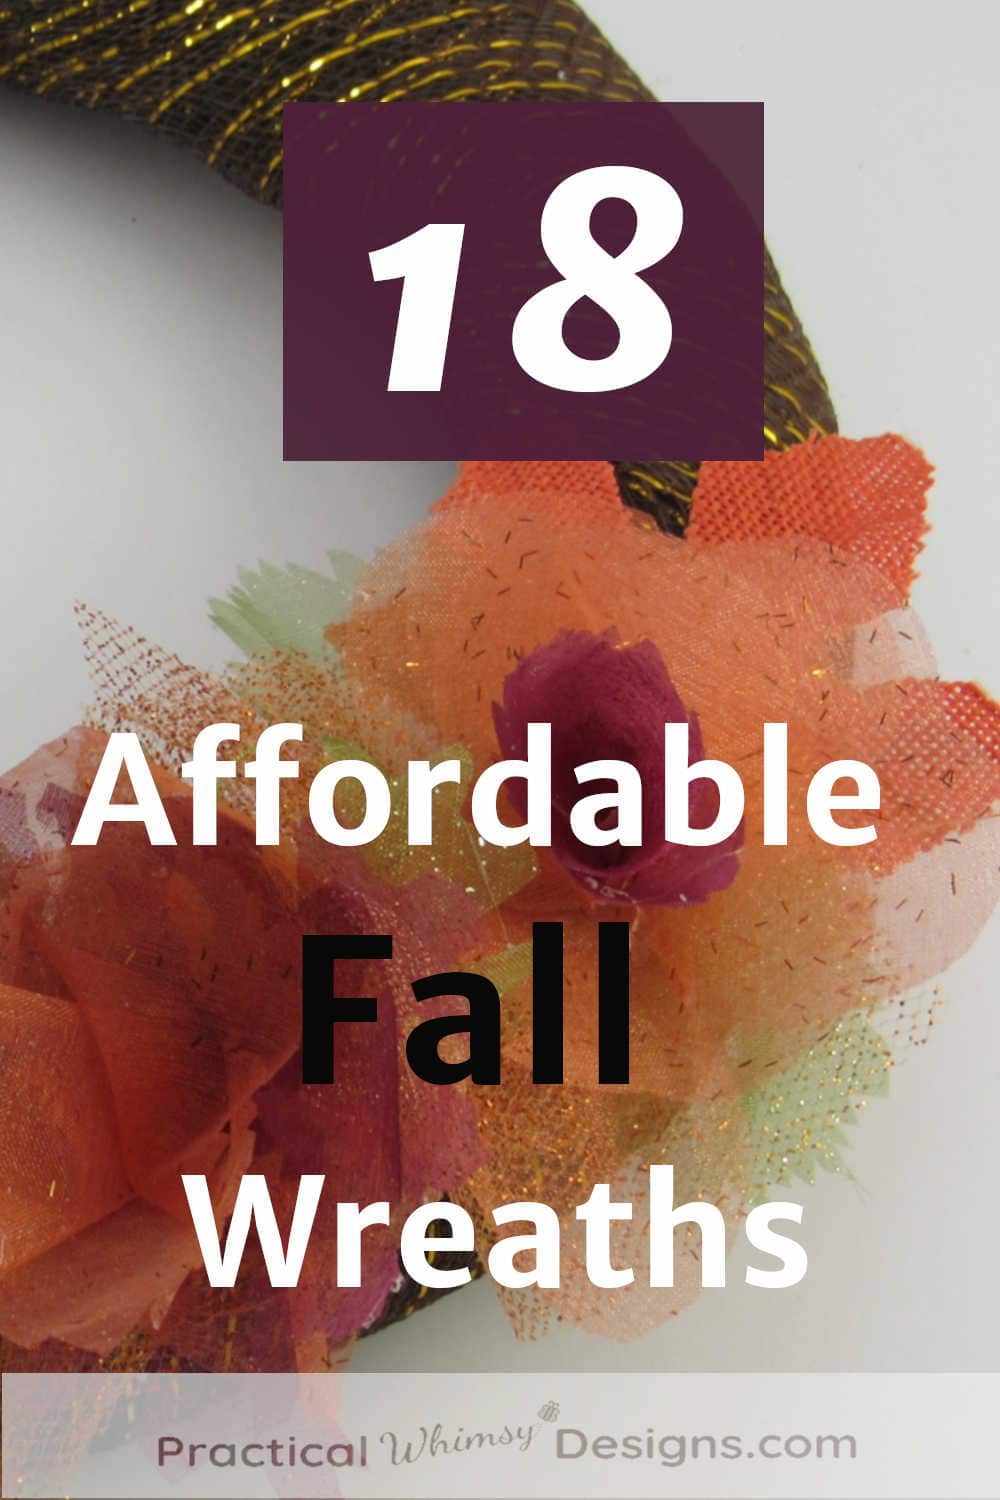 Affordable fall wreath with fabric flowers